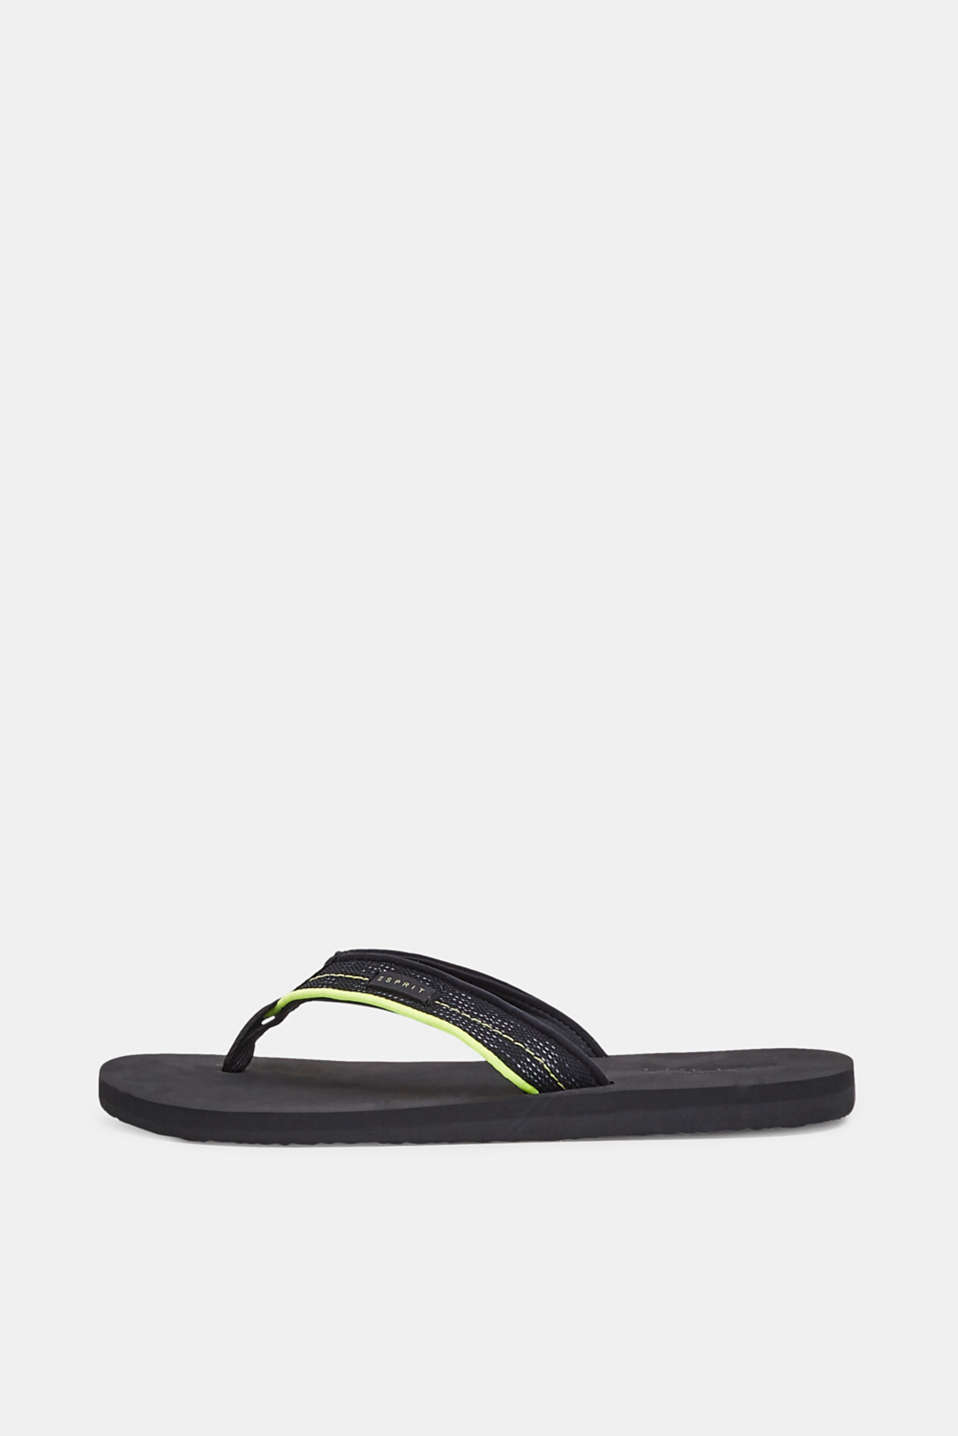 Thong sandals with a wide strap